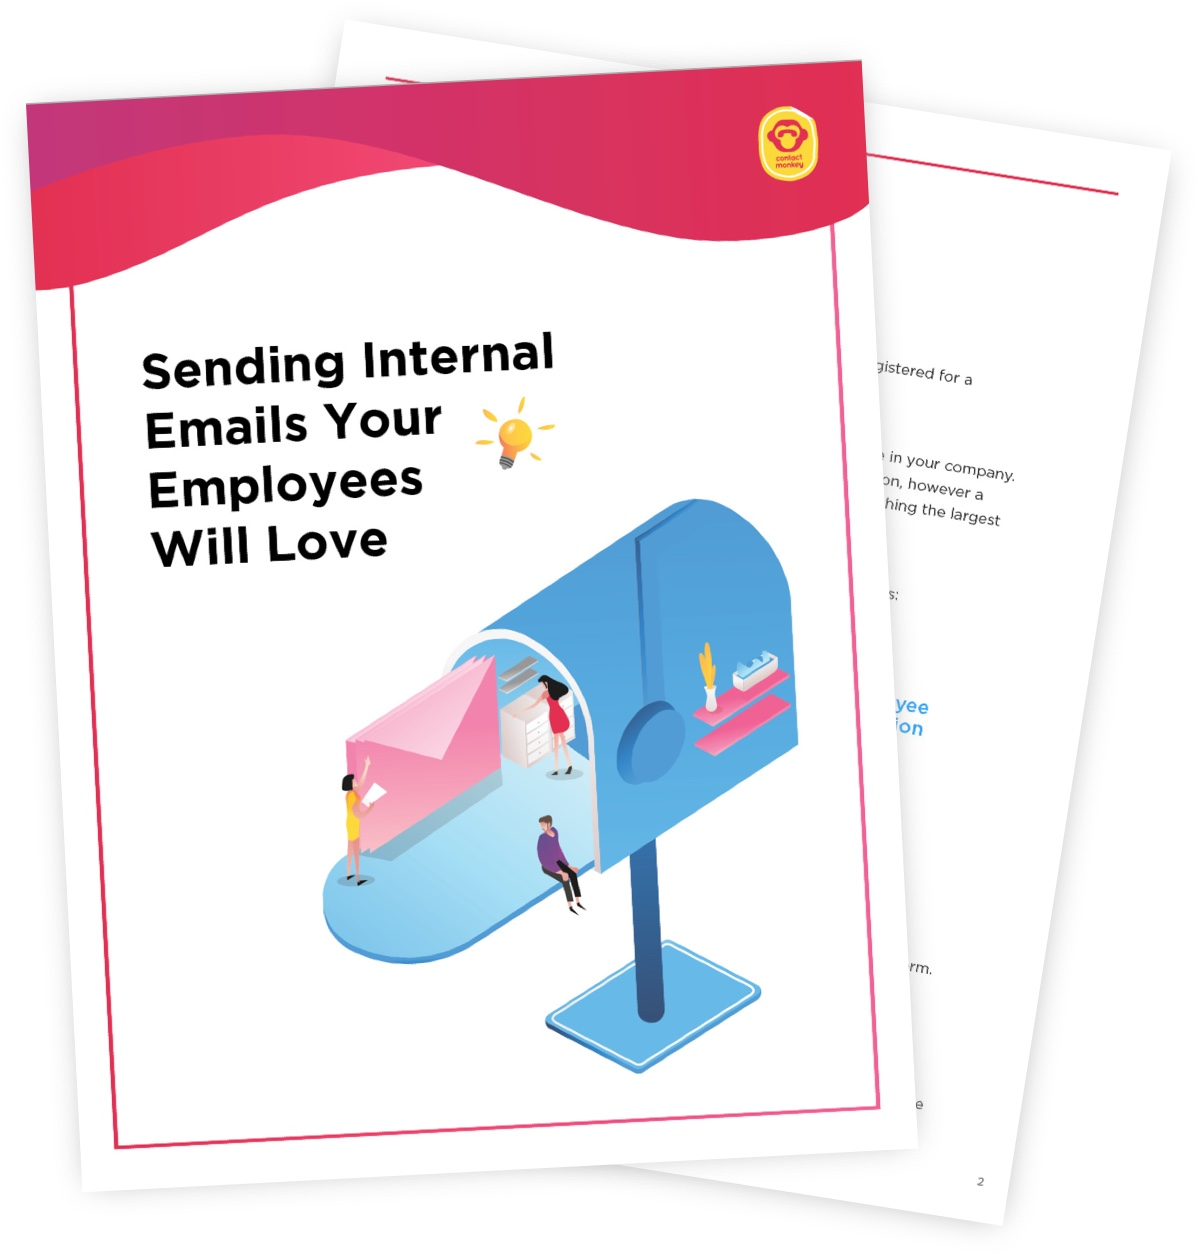 Send_Emails_Employees_love.